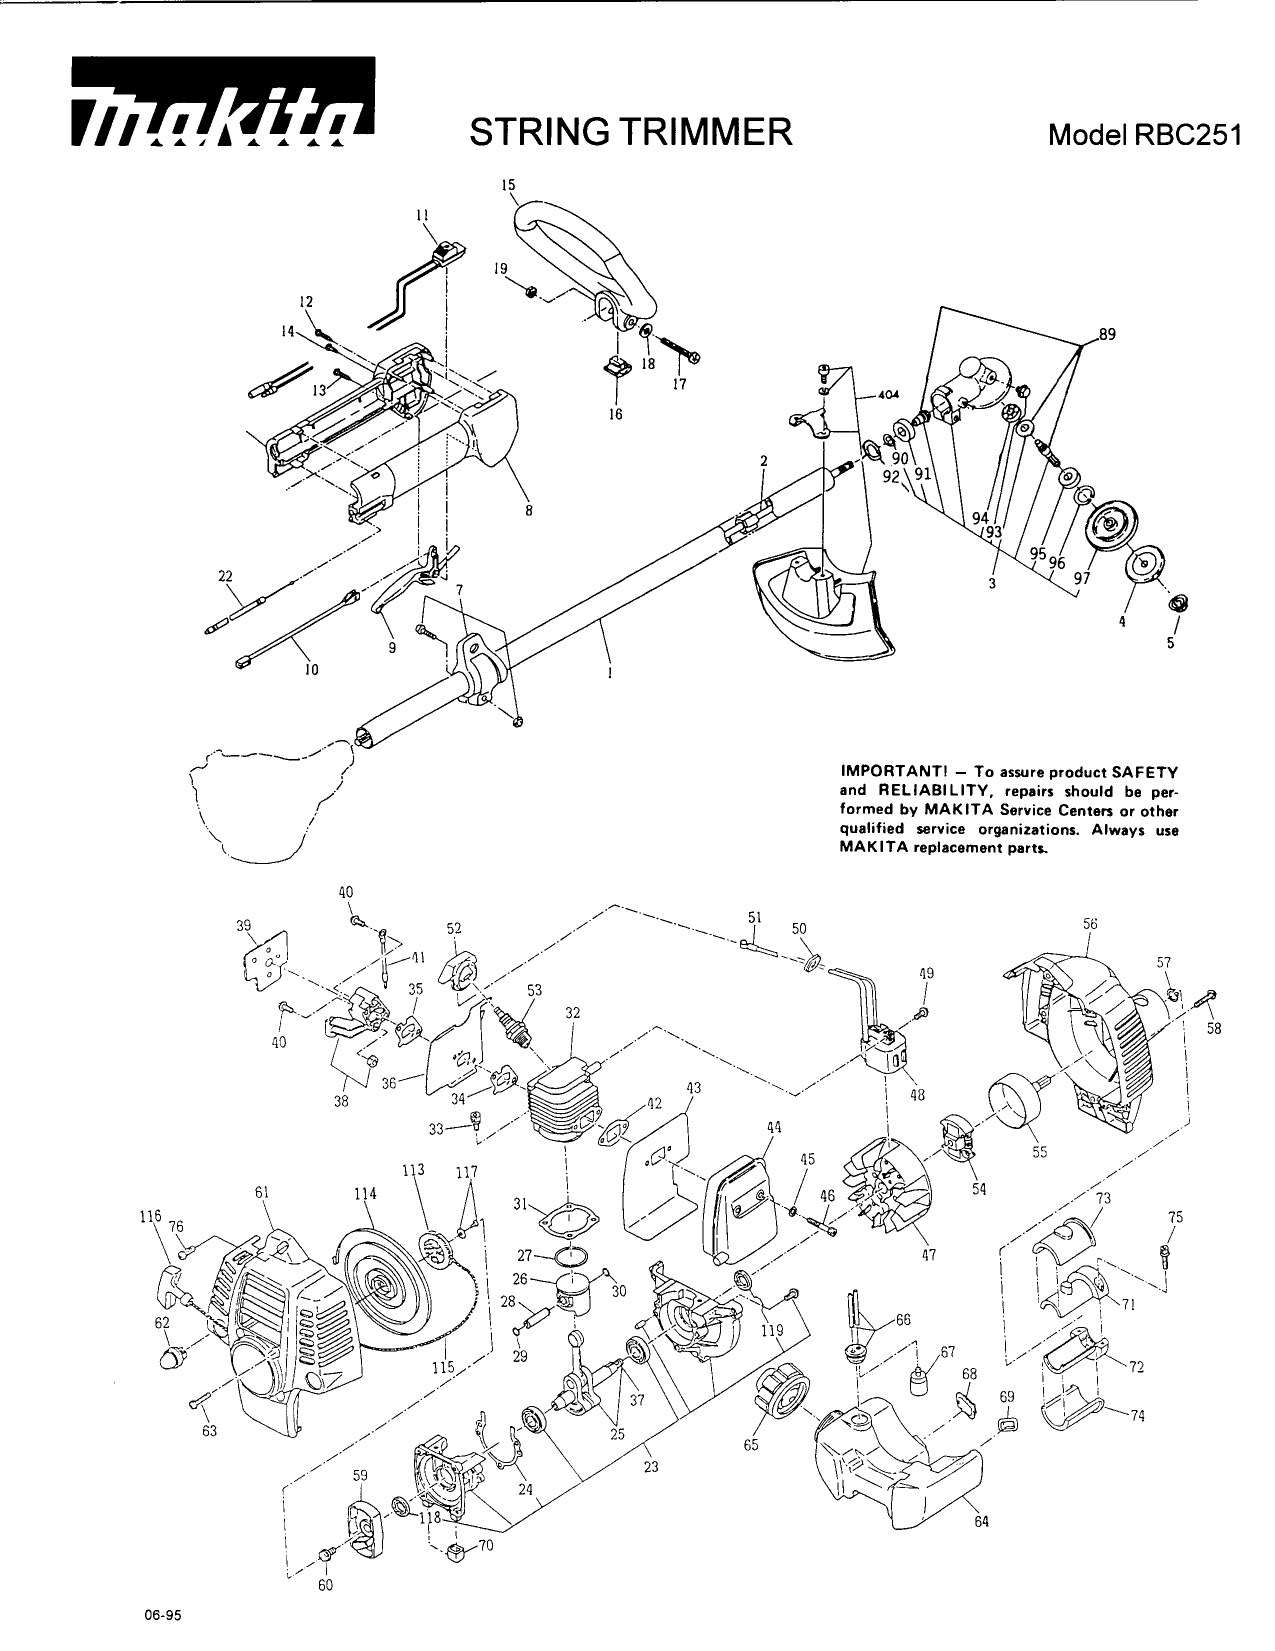 Download free pdf for Makita RBC2510 String Trimmer Other